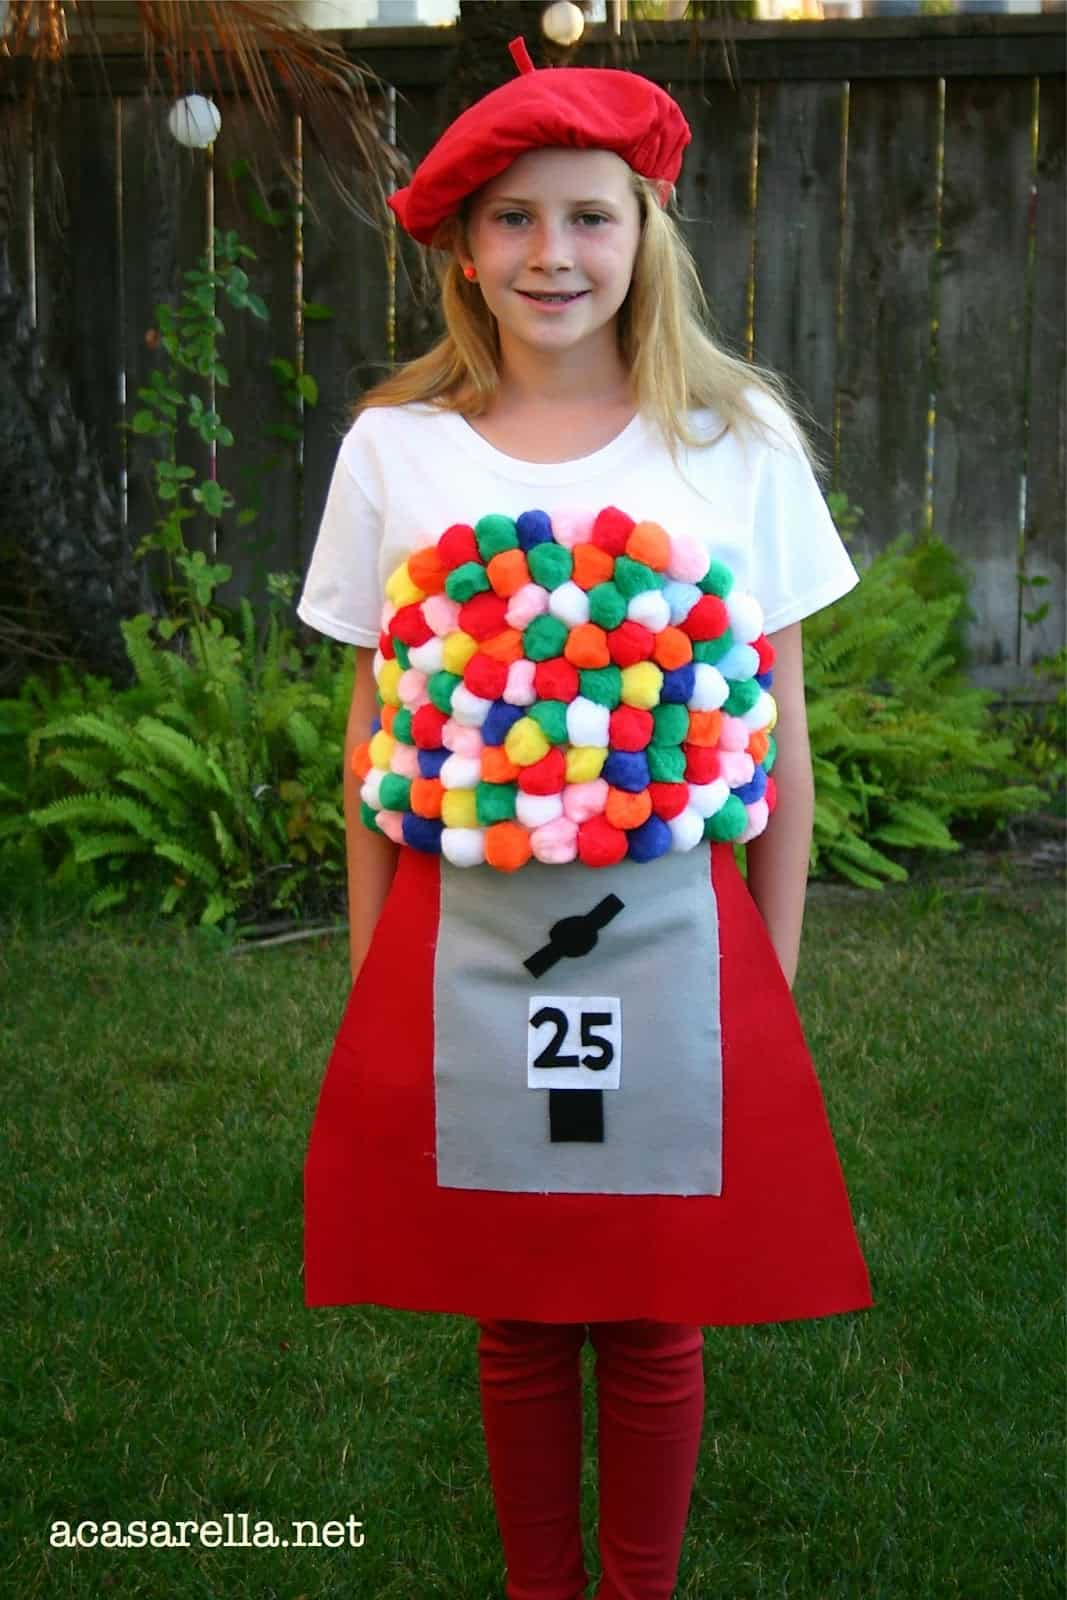 bubblegum-machine-costume